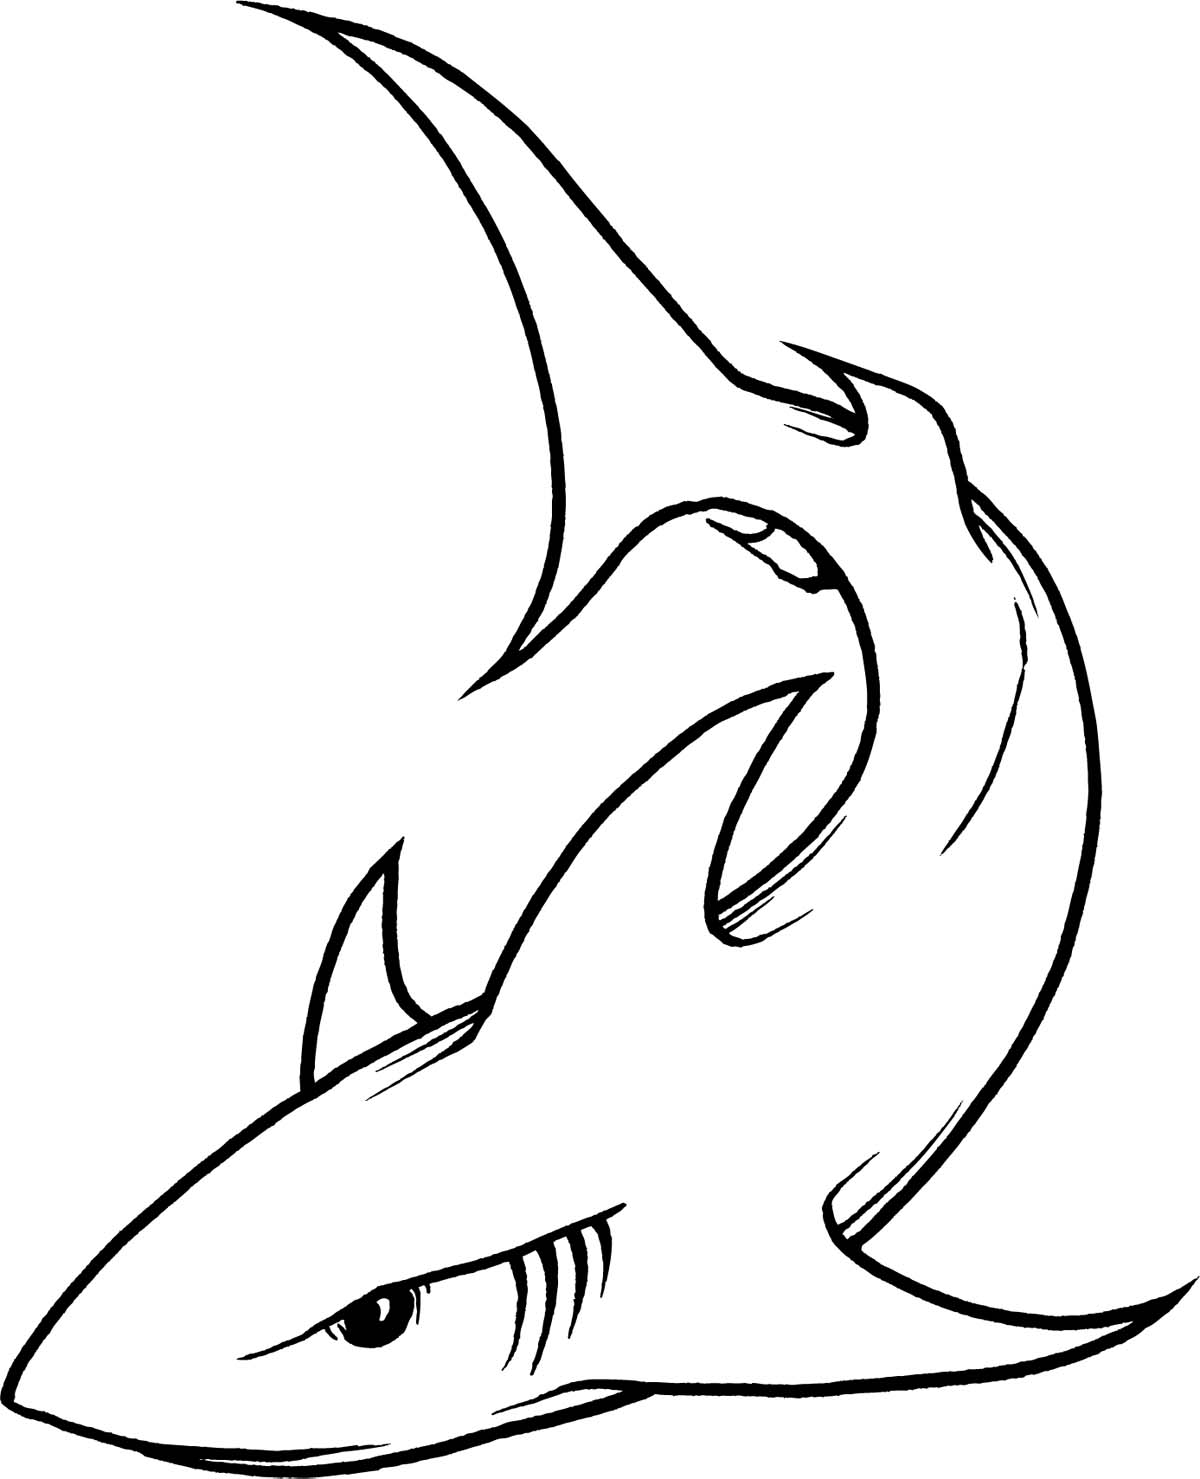 33 Shark Outline Drawing Free Cliparts That You Can Download To